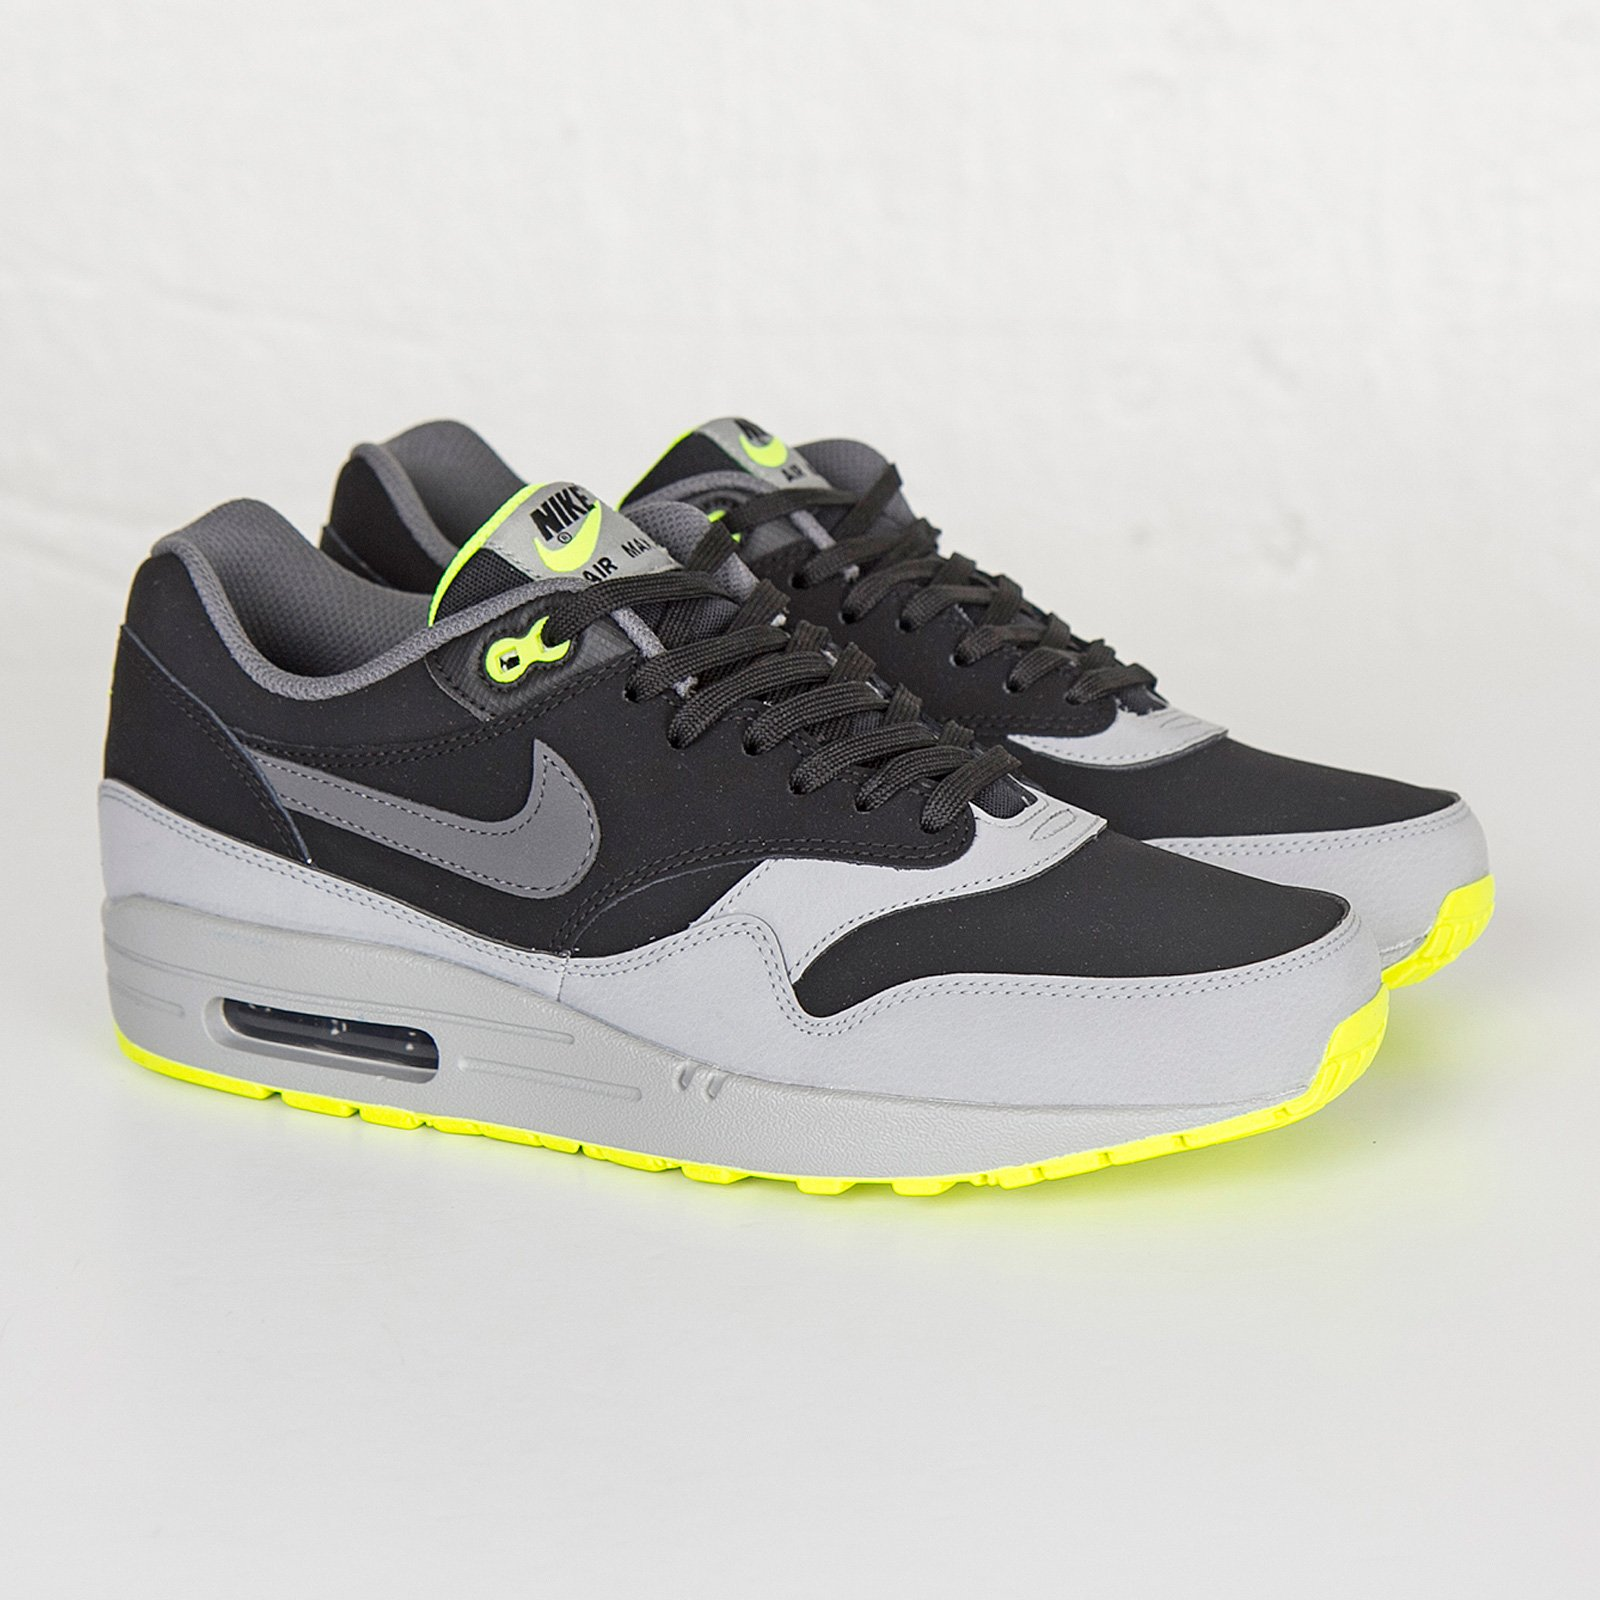 Nike Air Max 1 LTR Black Dark Grey Silver Volt | Footshop